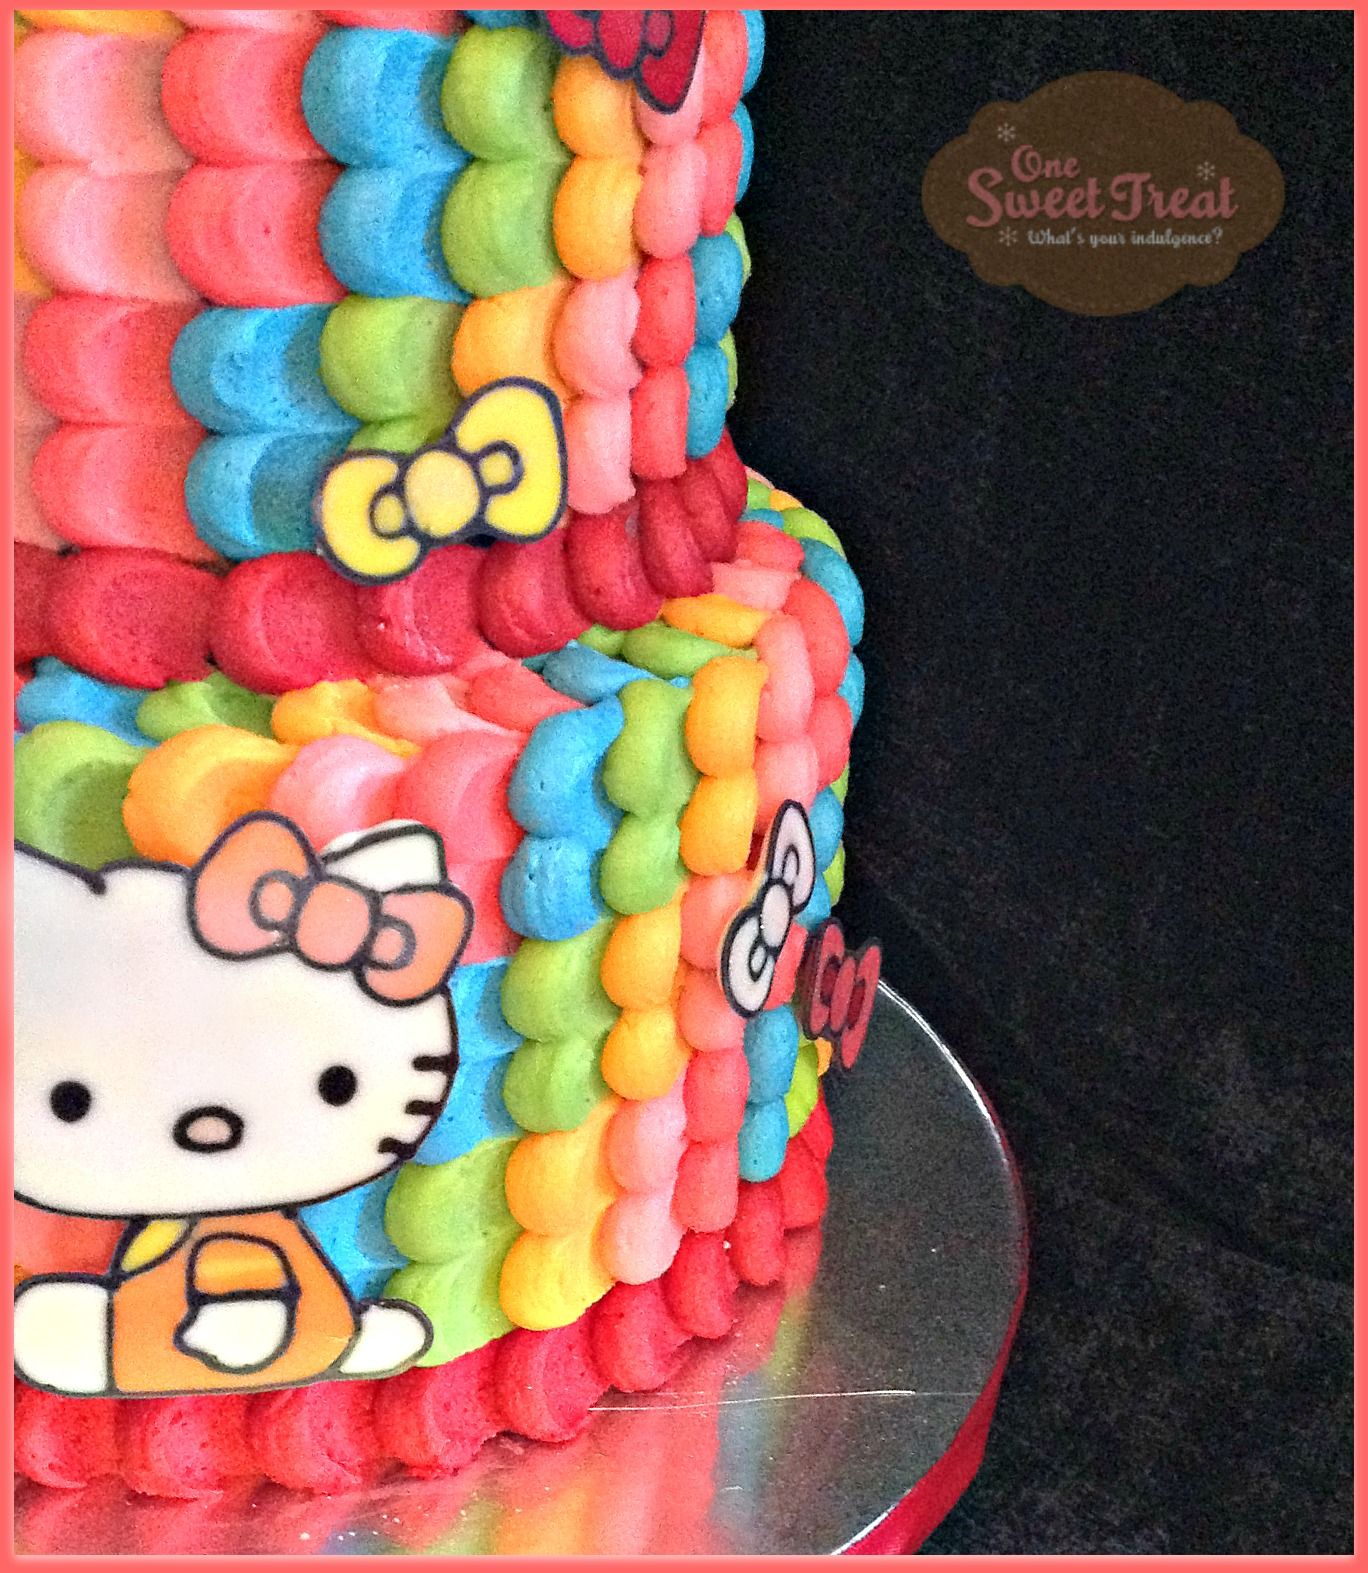 Hello Kitty Cake by OneSweetTreat More at OneSweetTreatcom Cake